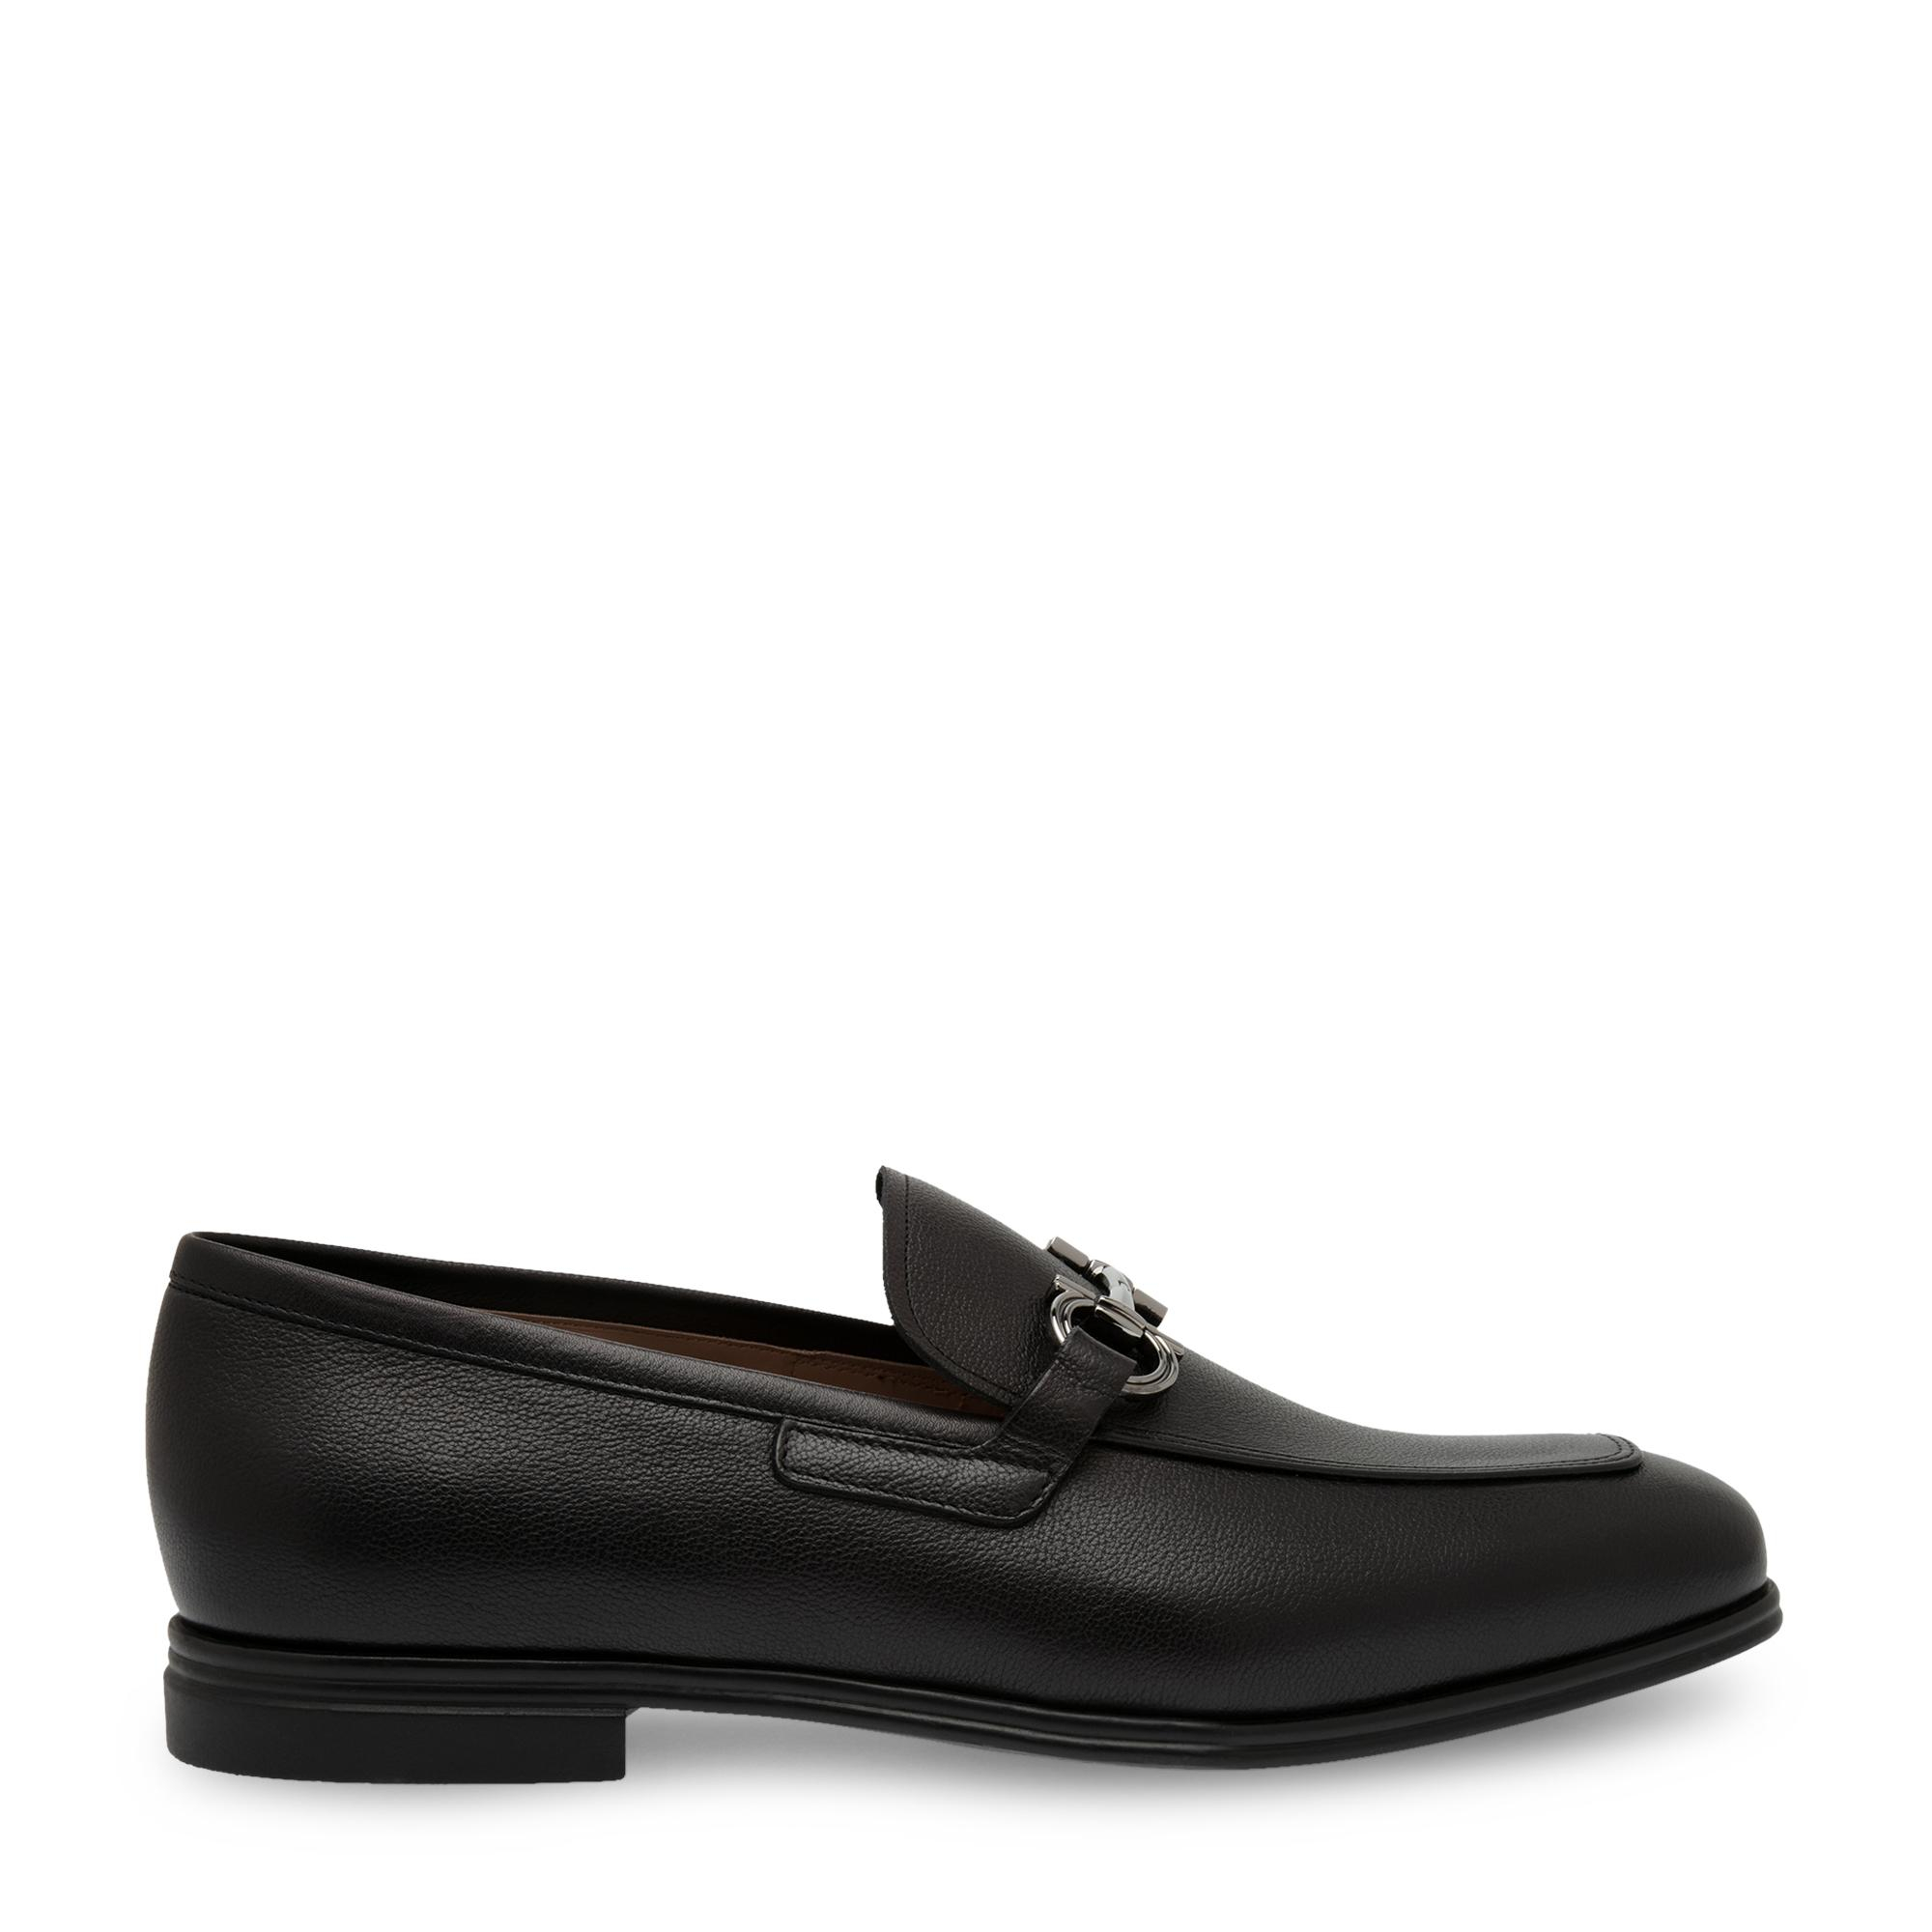 Gancini moccasin loafers